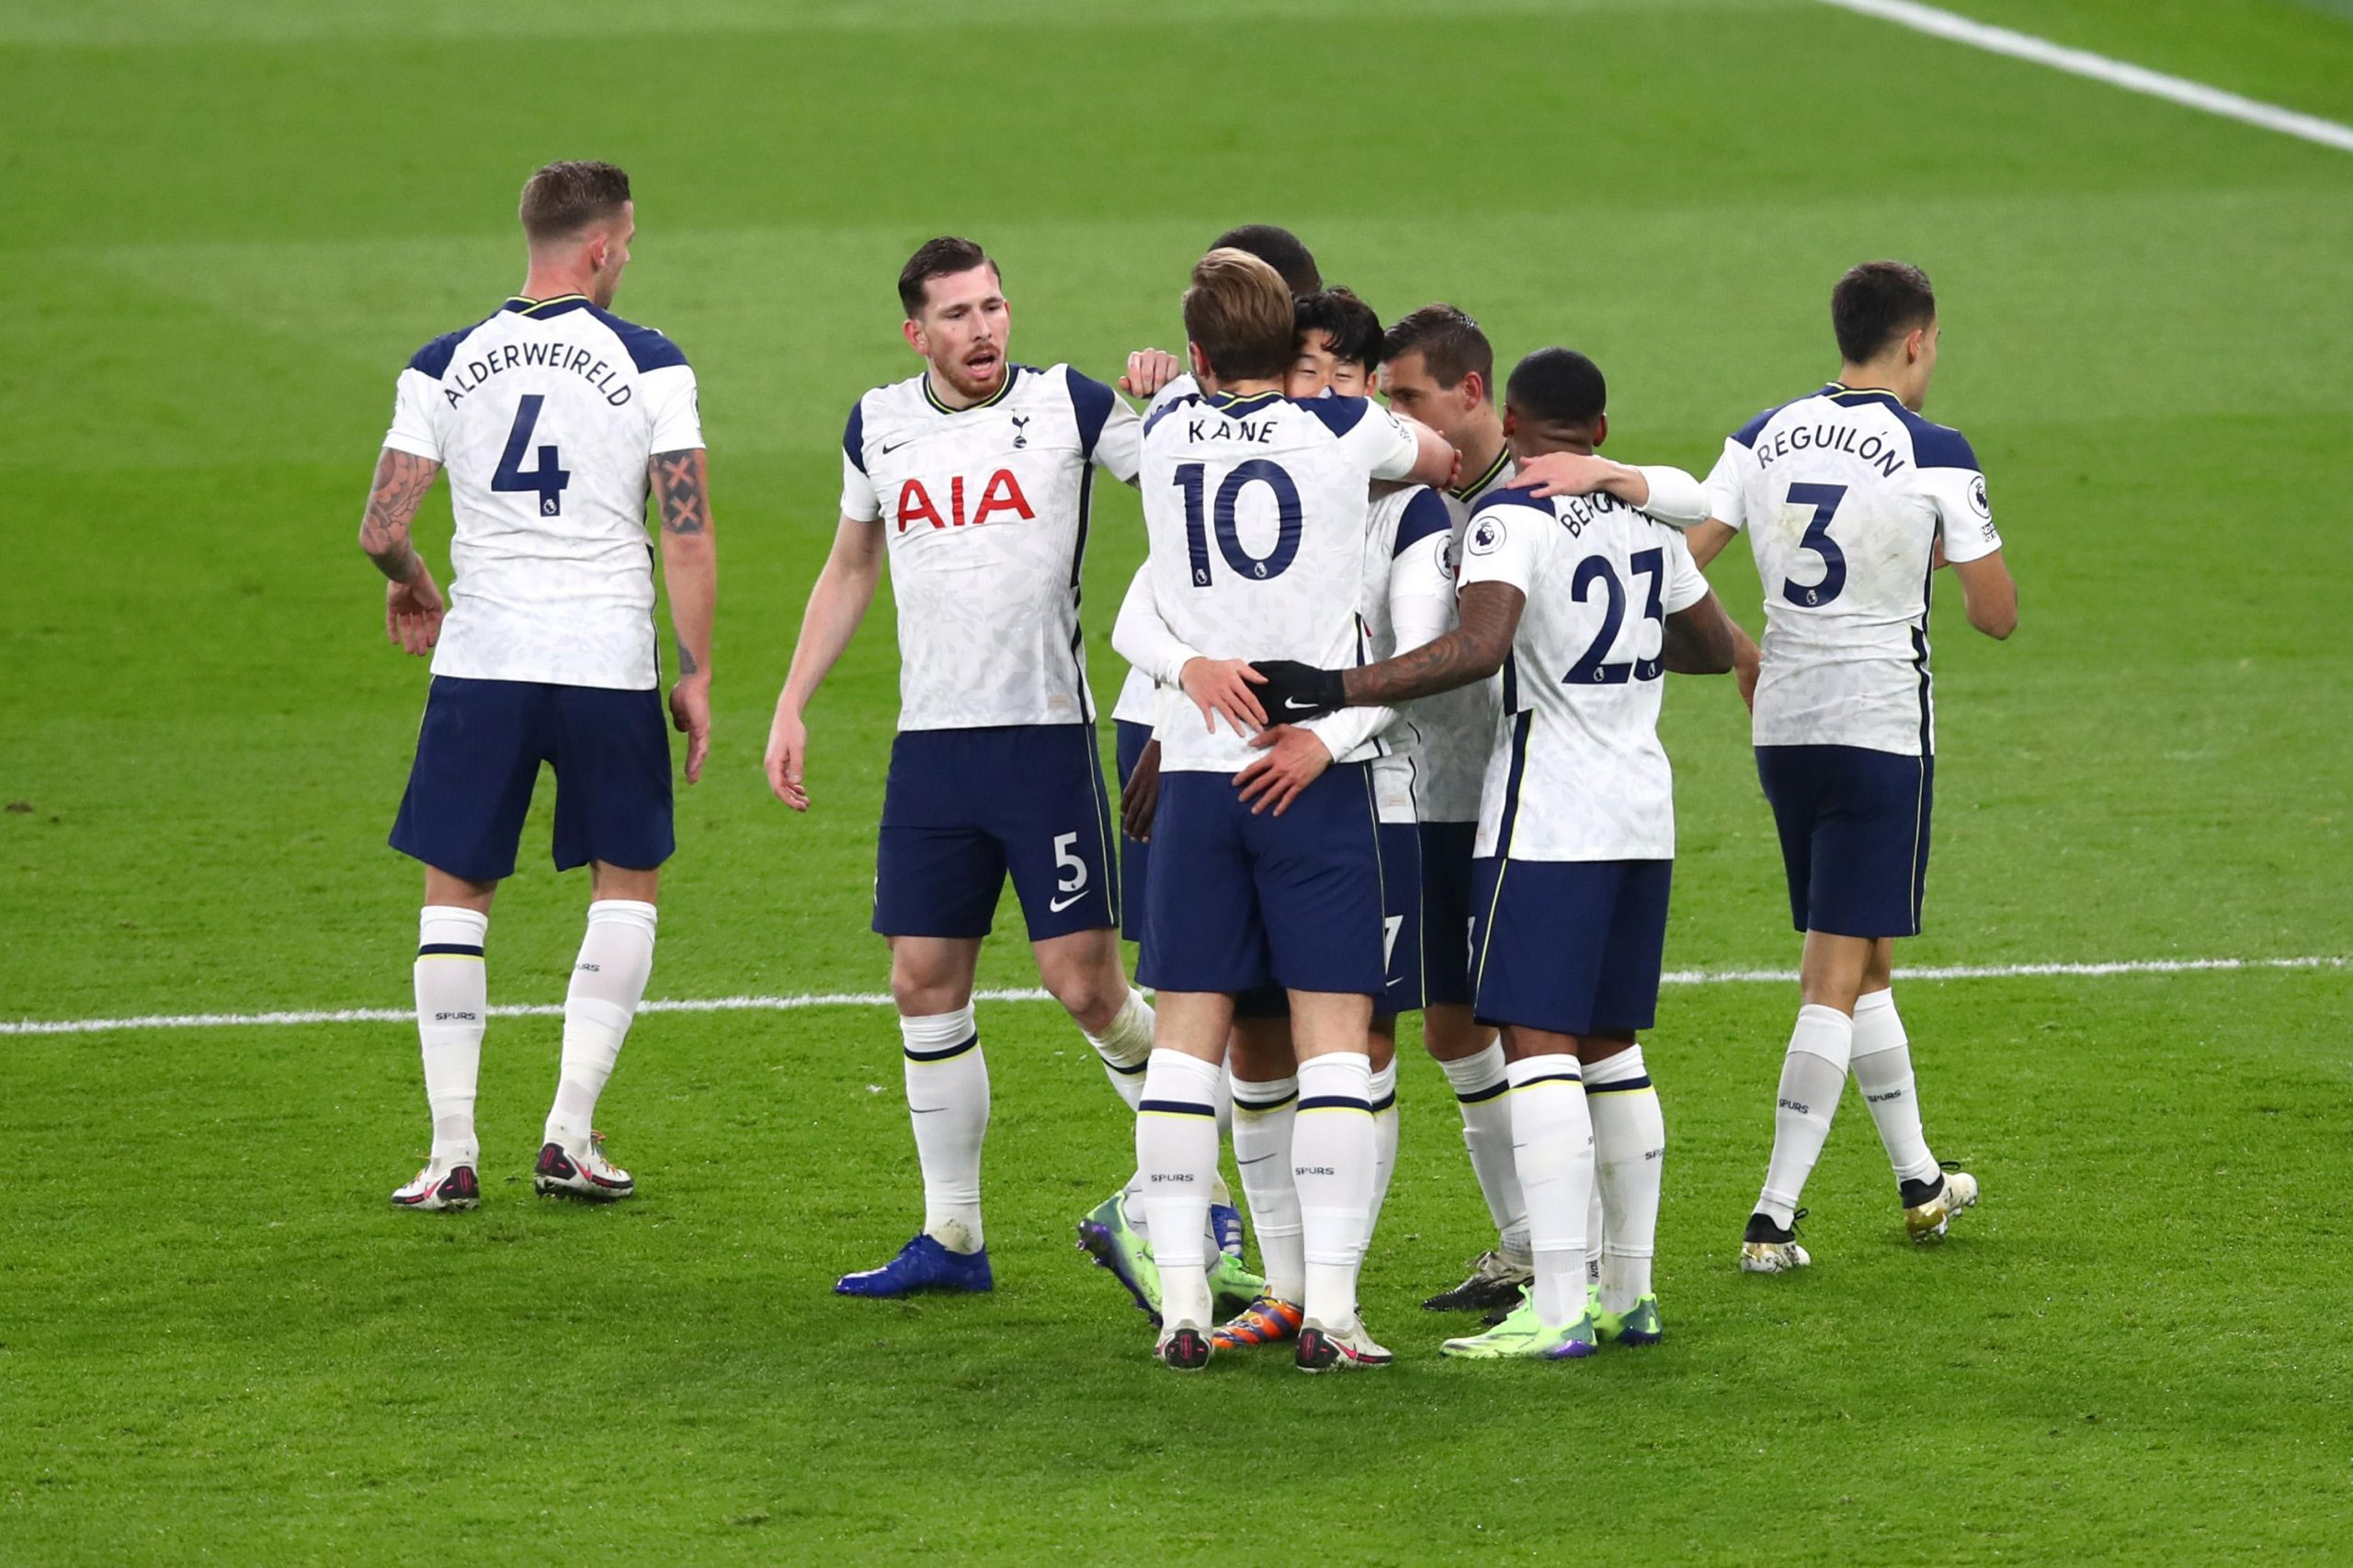 Premier League: Kane Makes North London Derby Record As Spurs Beat Arsenal To Go Top